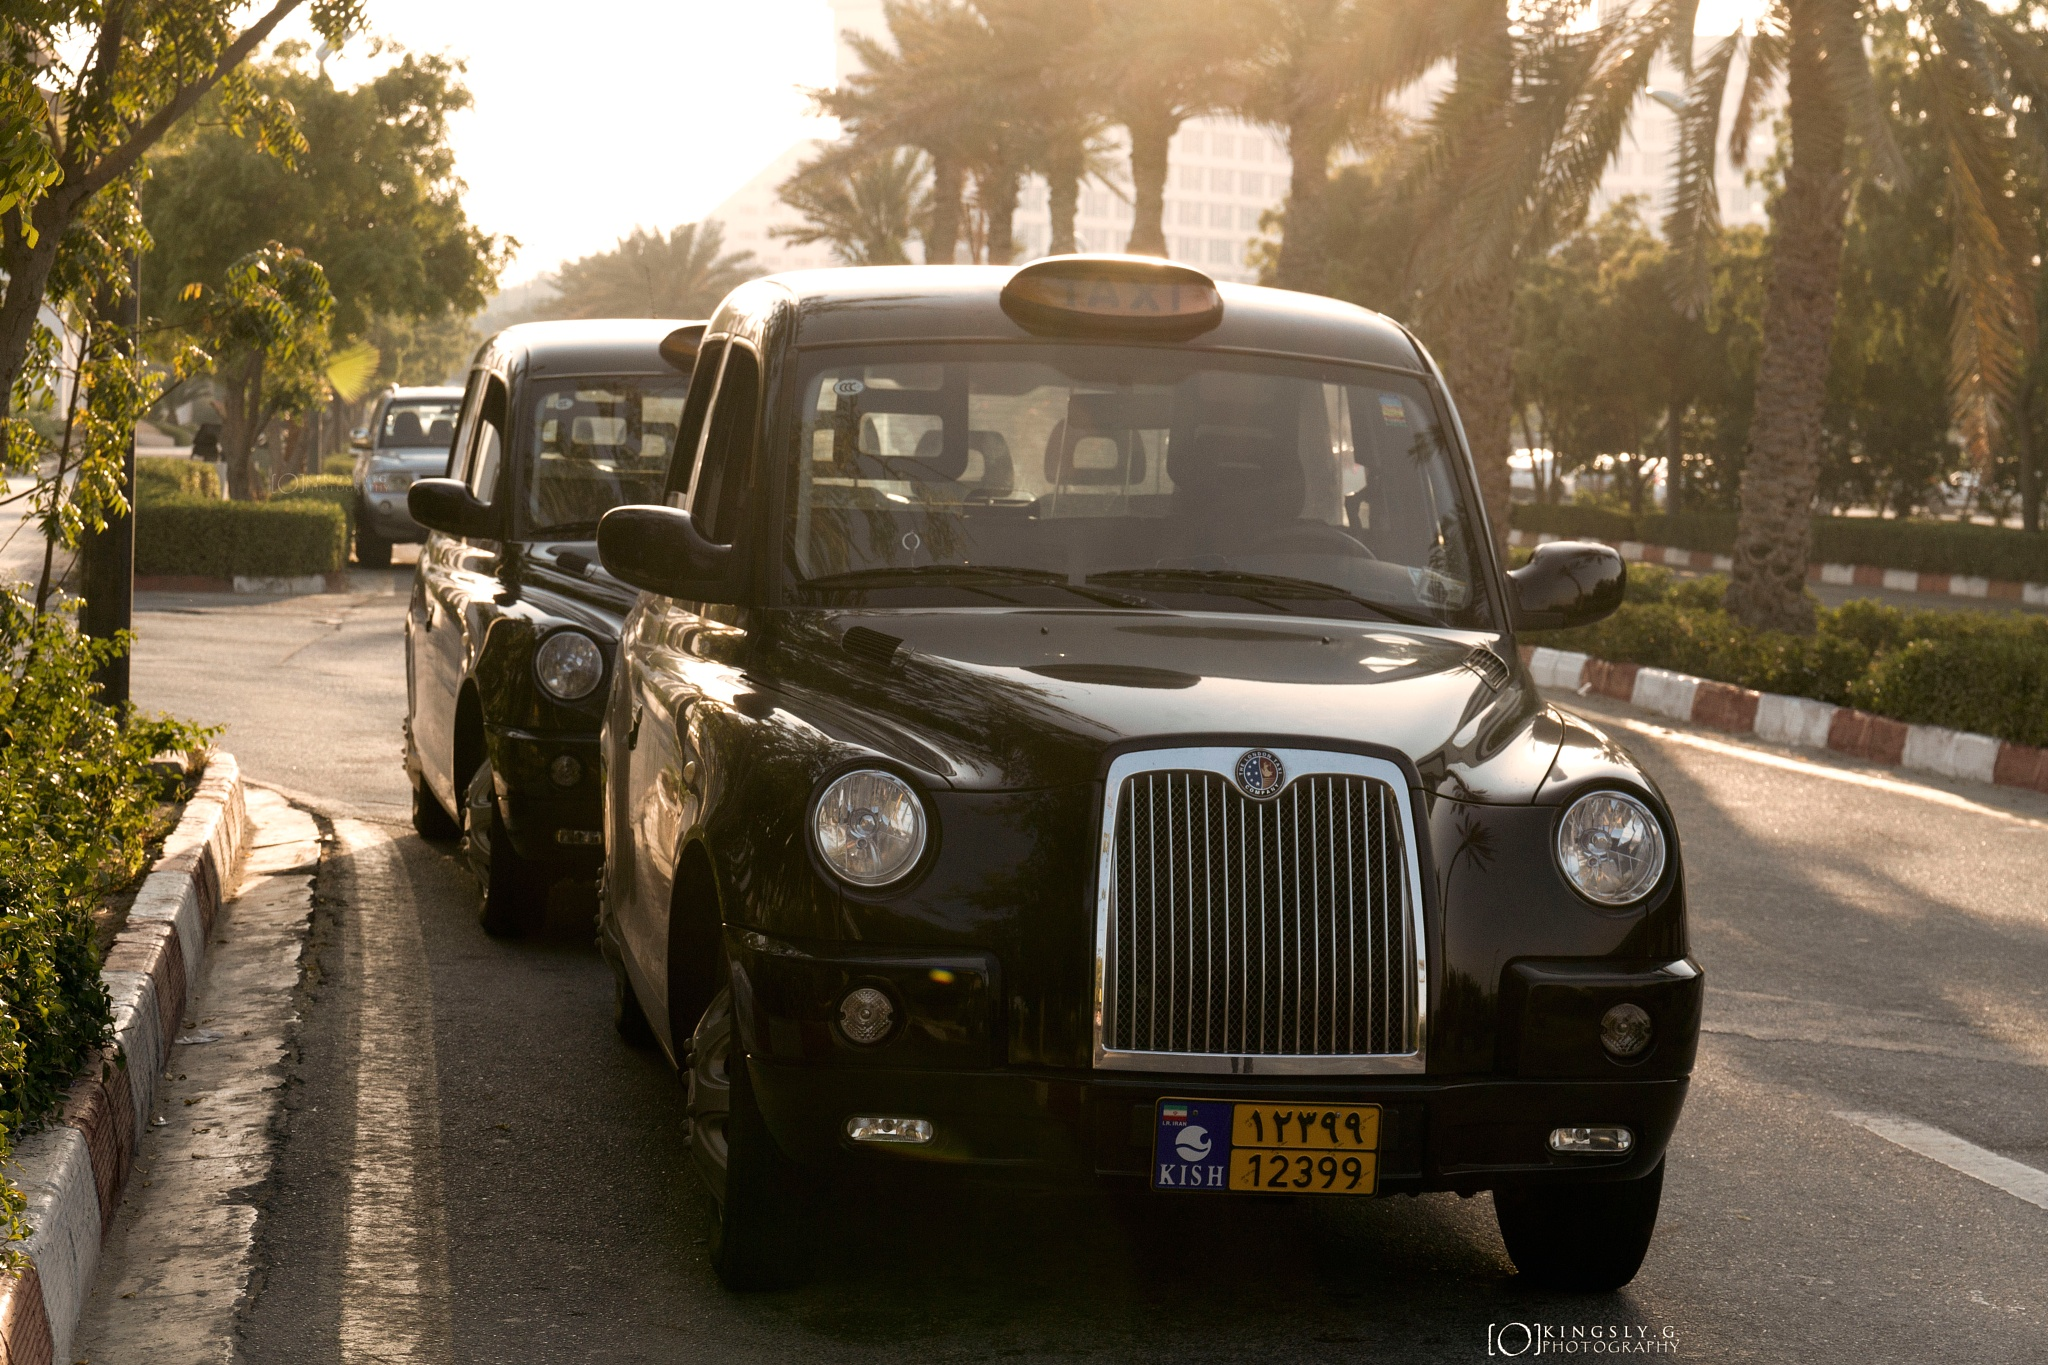 Taxi by kingsly